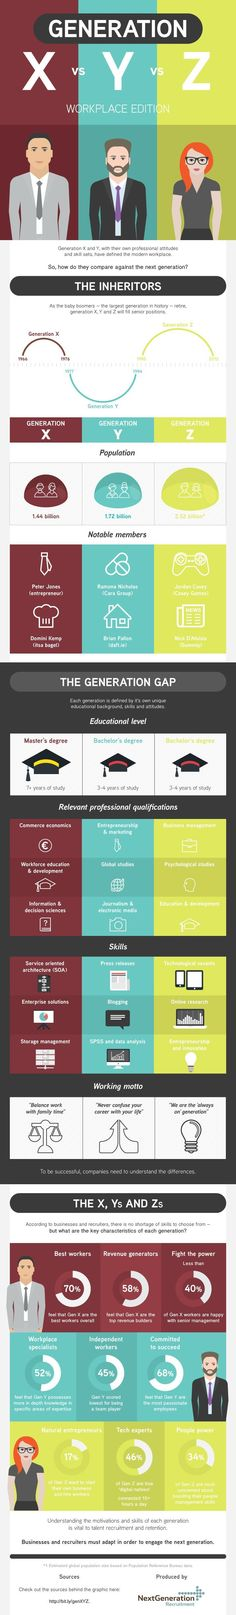 Generation X vs Y vs Z: Workplace Edition #infographic - @visualistan